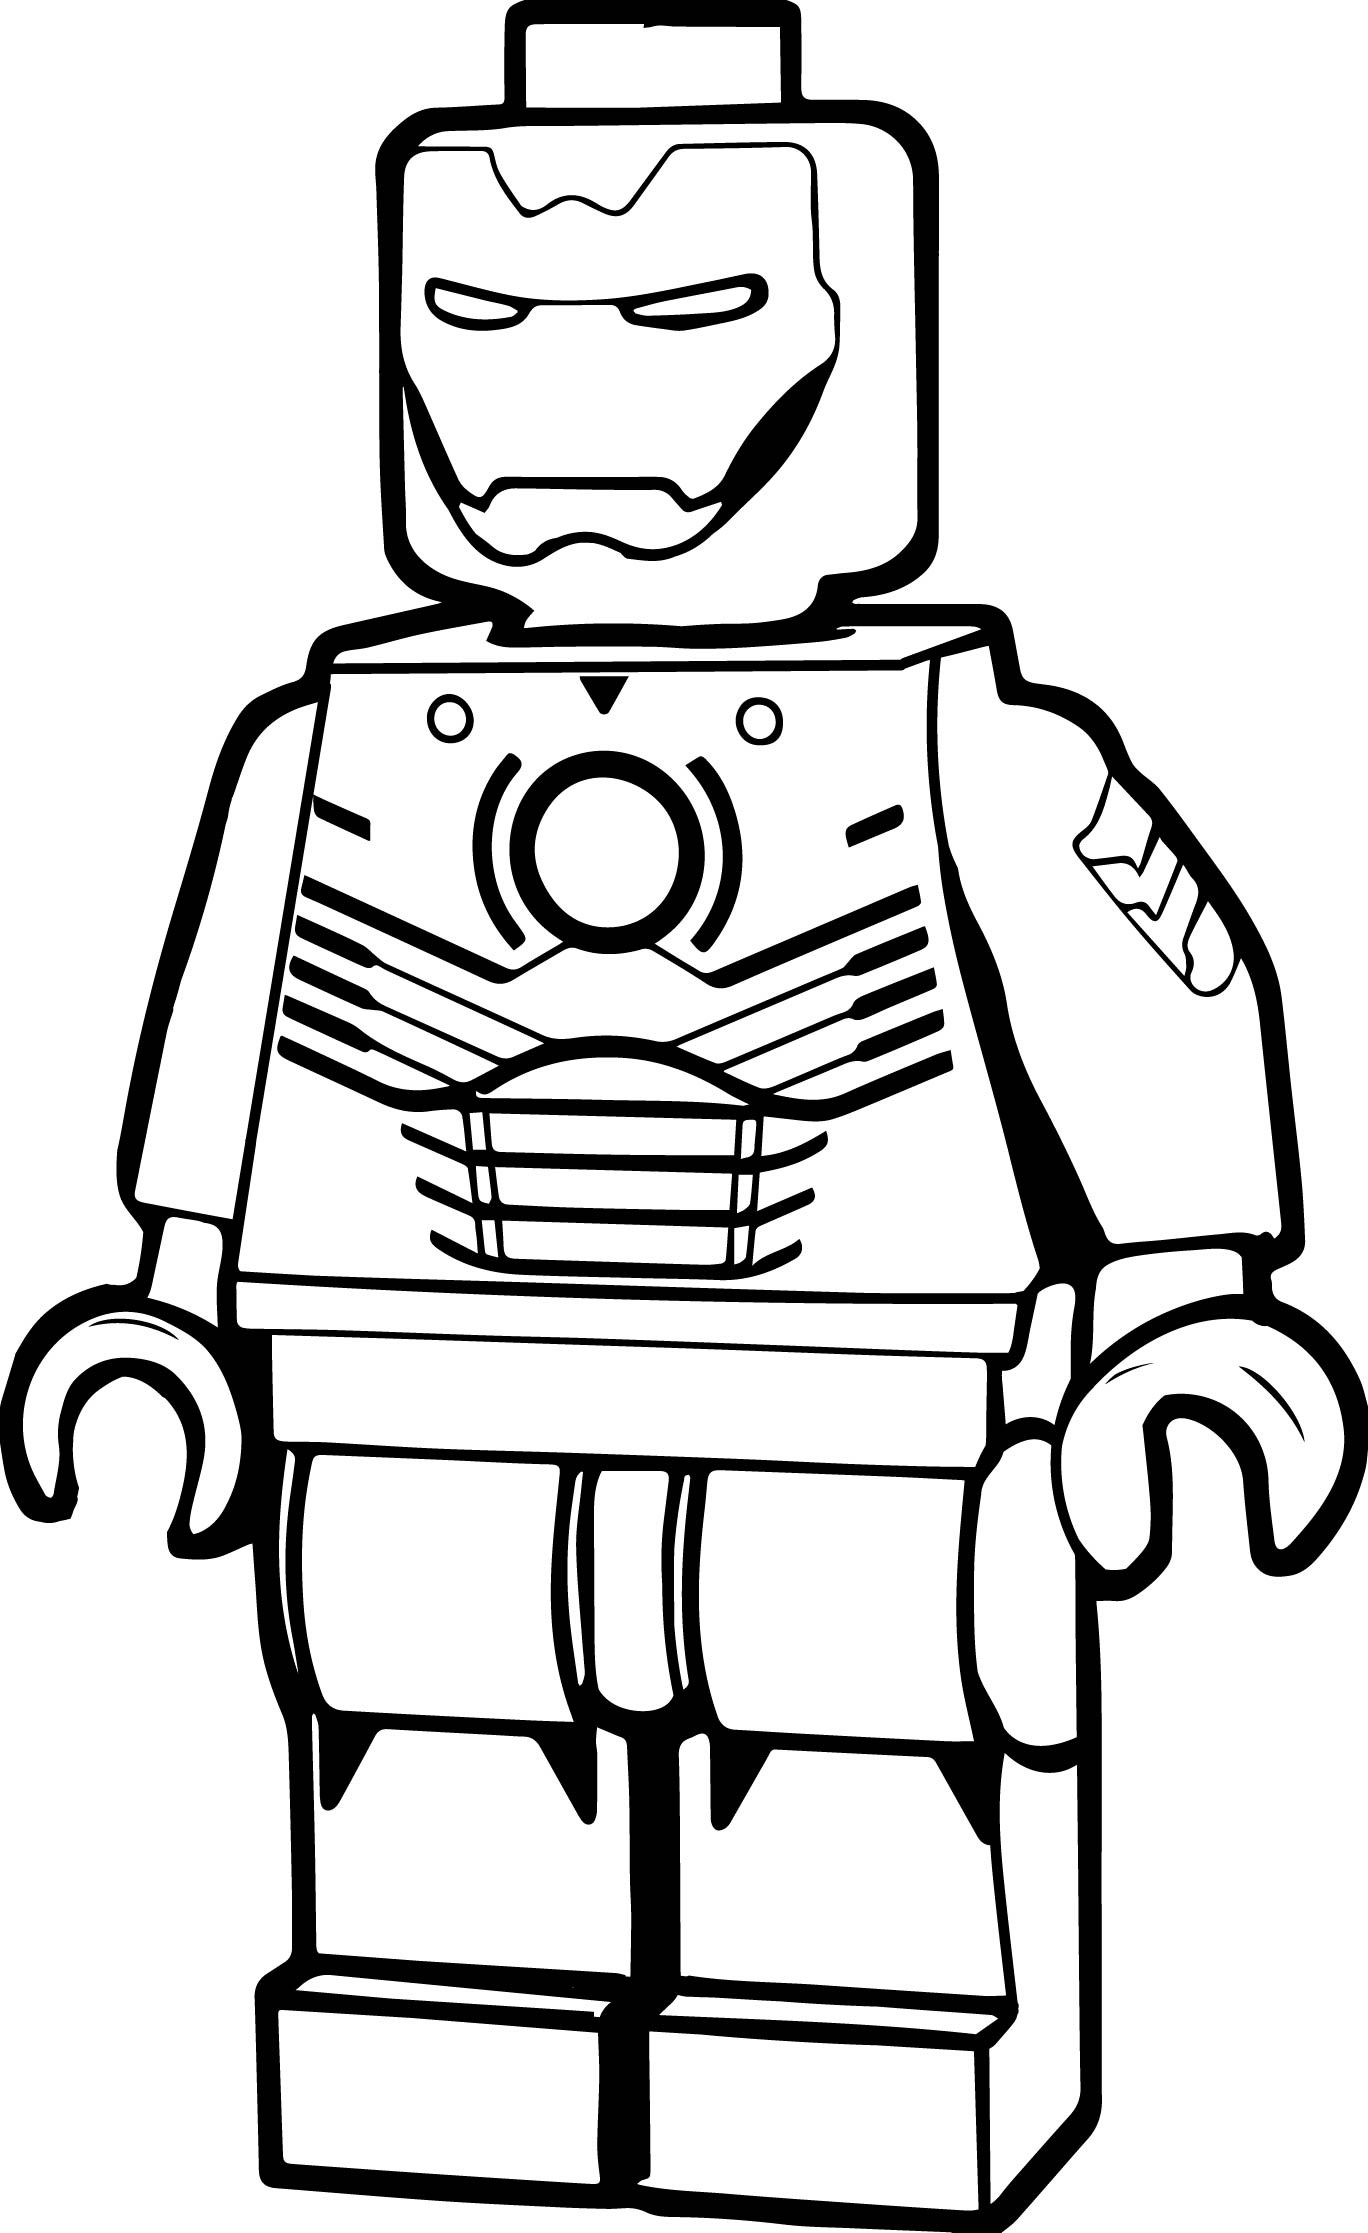 iron man free coloring pages iron man coloring pages free printable at getdrawings man coloring free iron pages